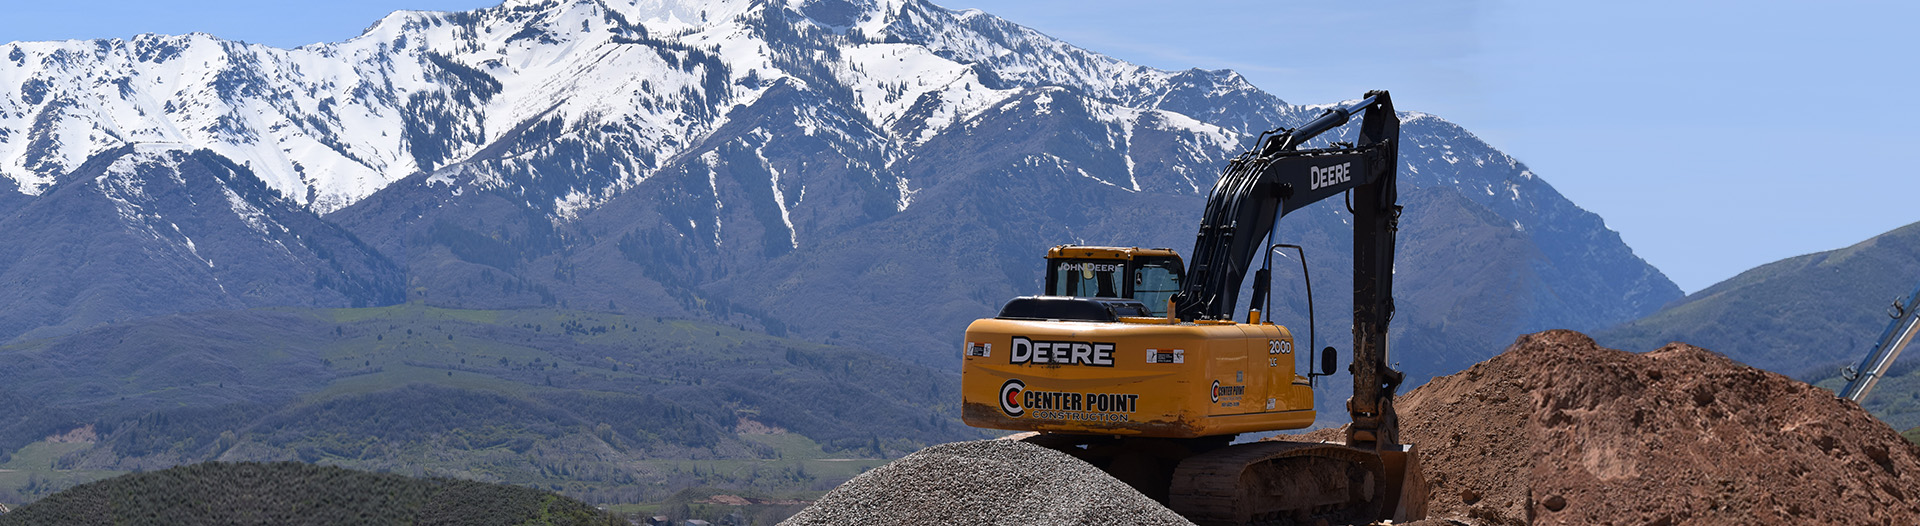 Center Point Construction trackhoe working in the mountains in Northern Utah